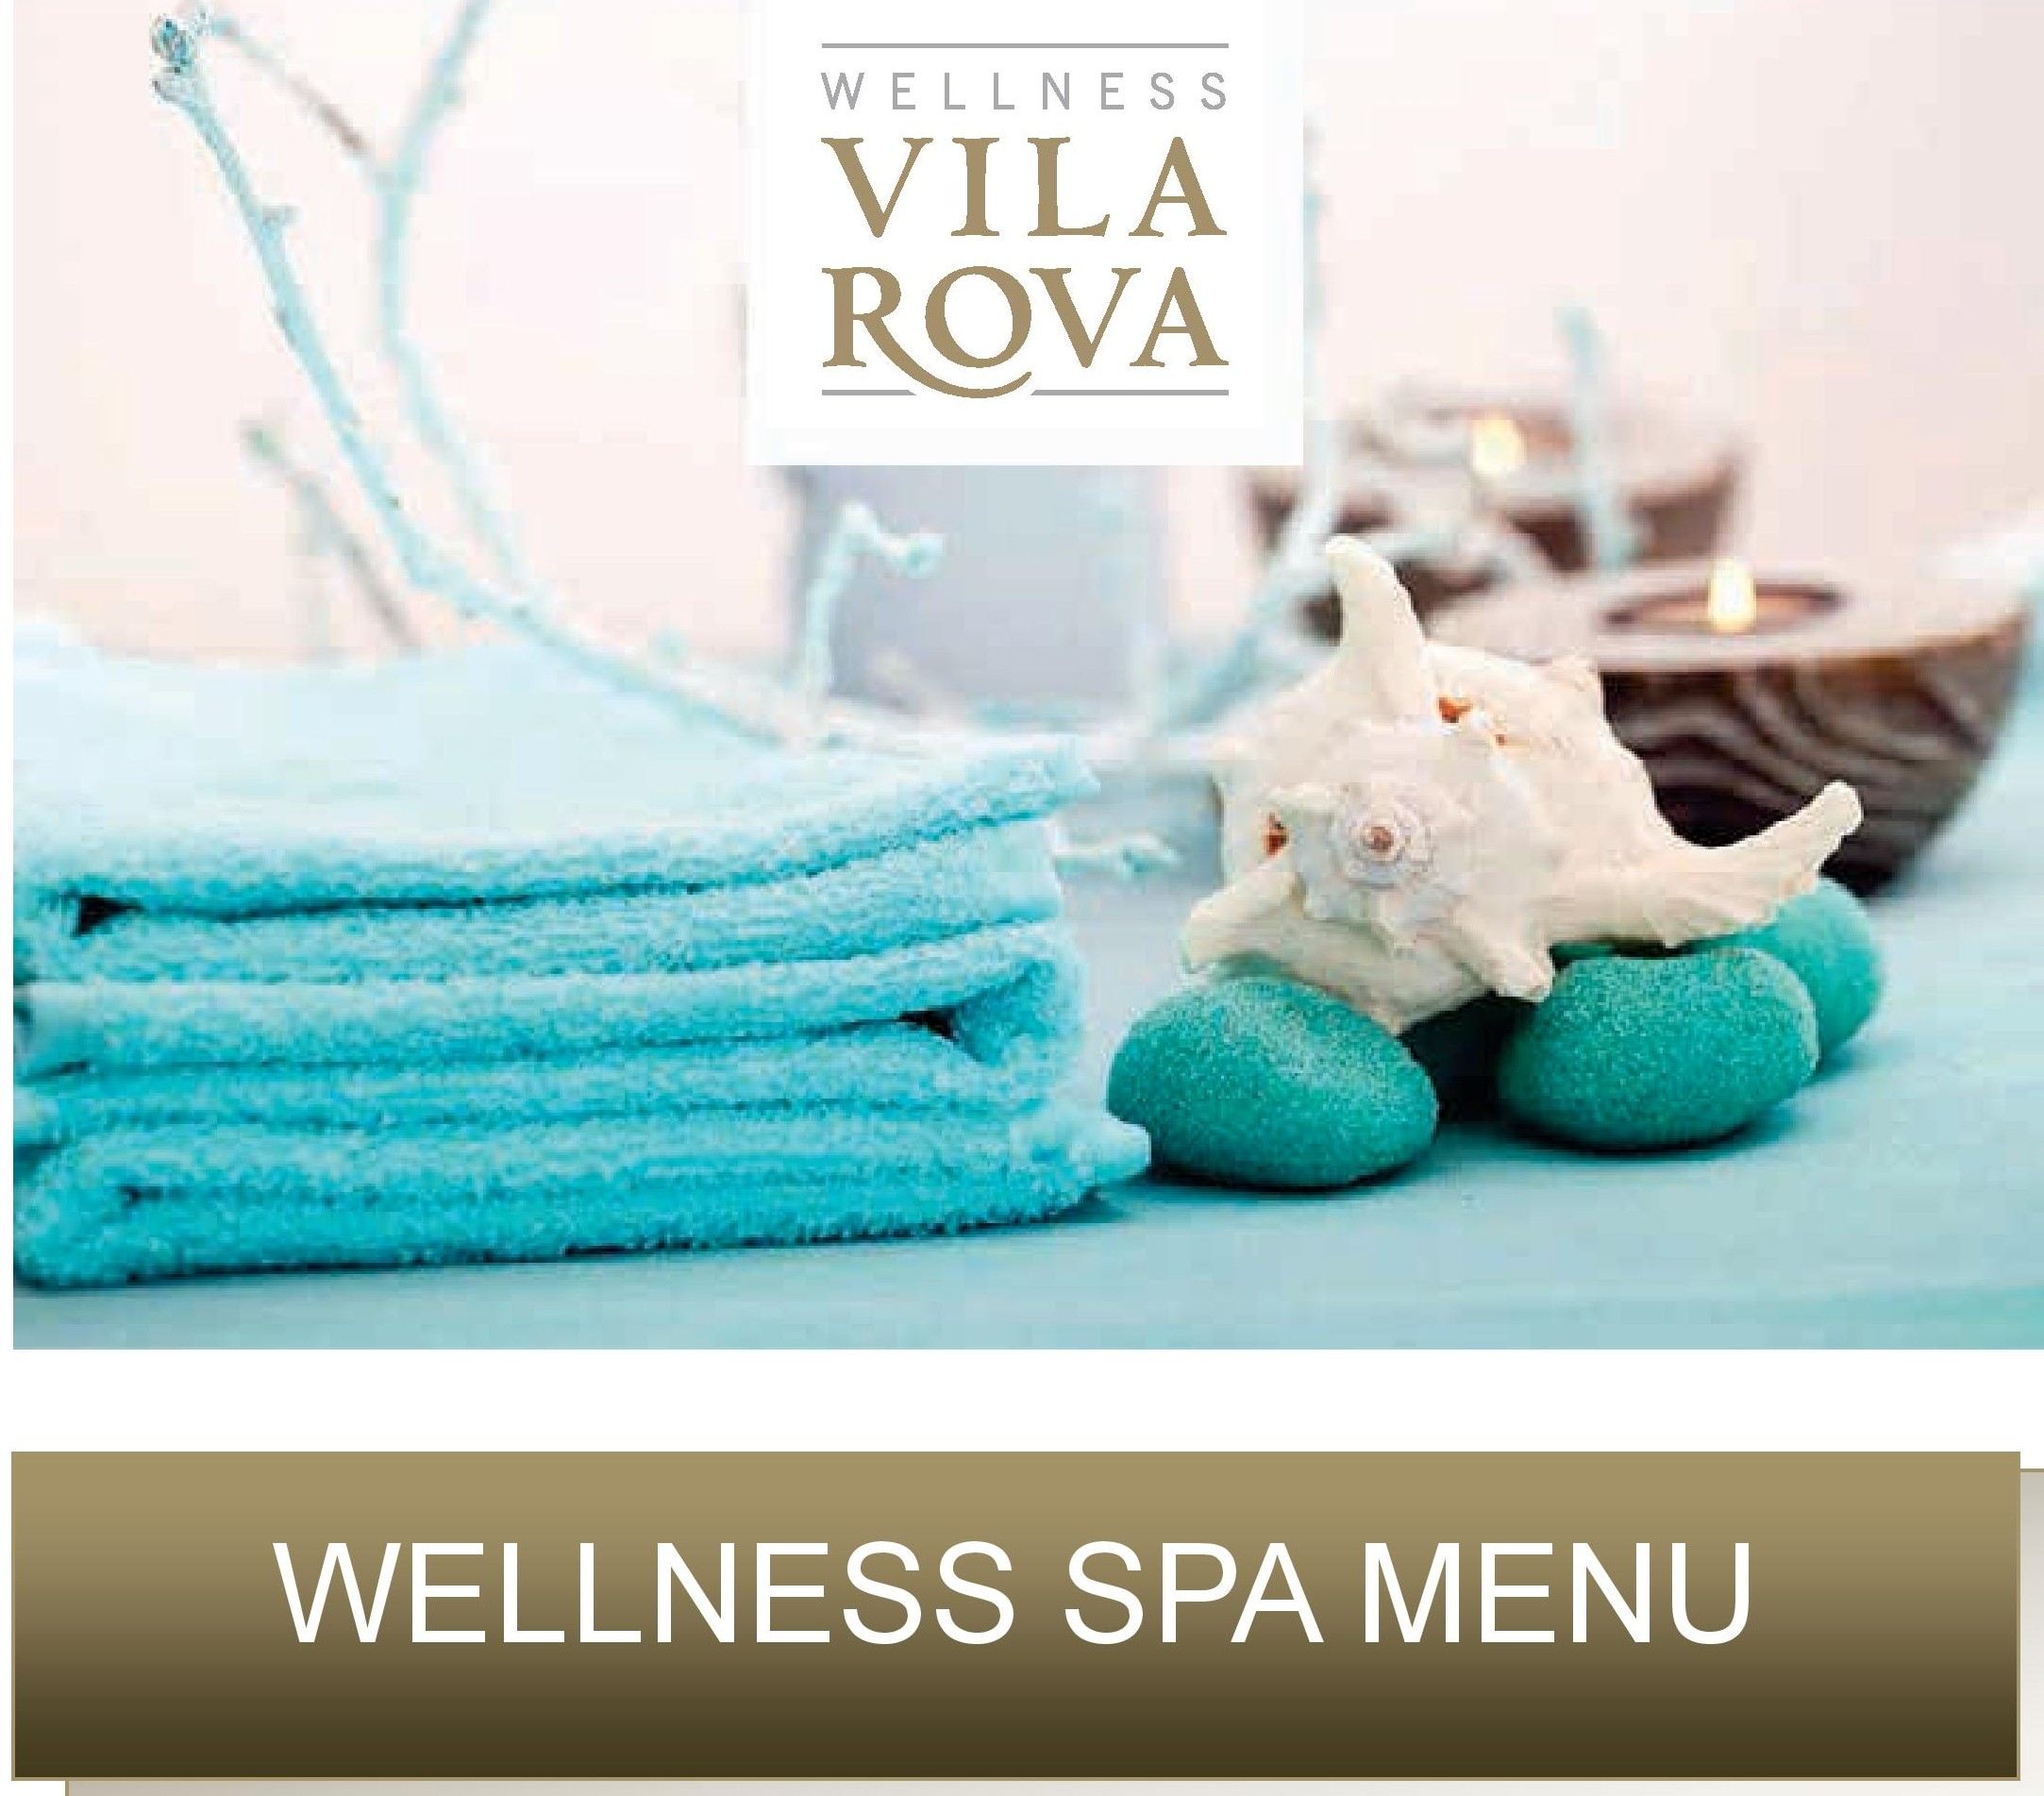 Wellness spa menu